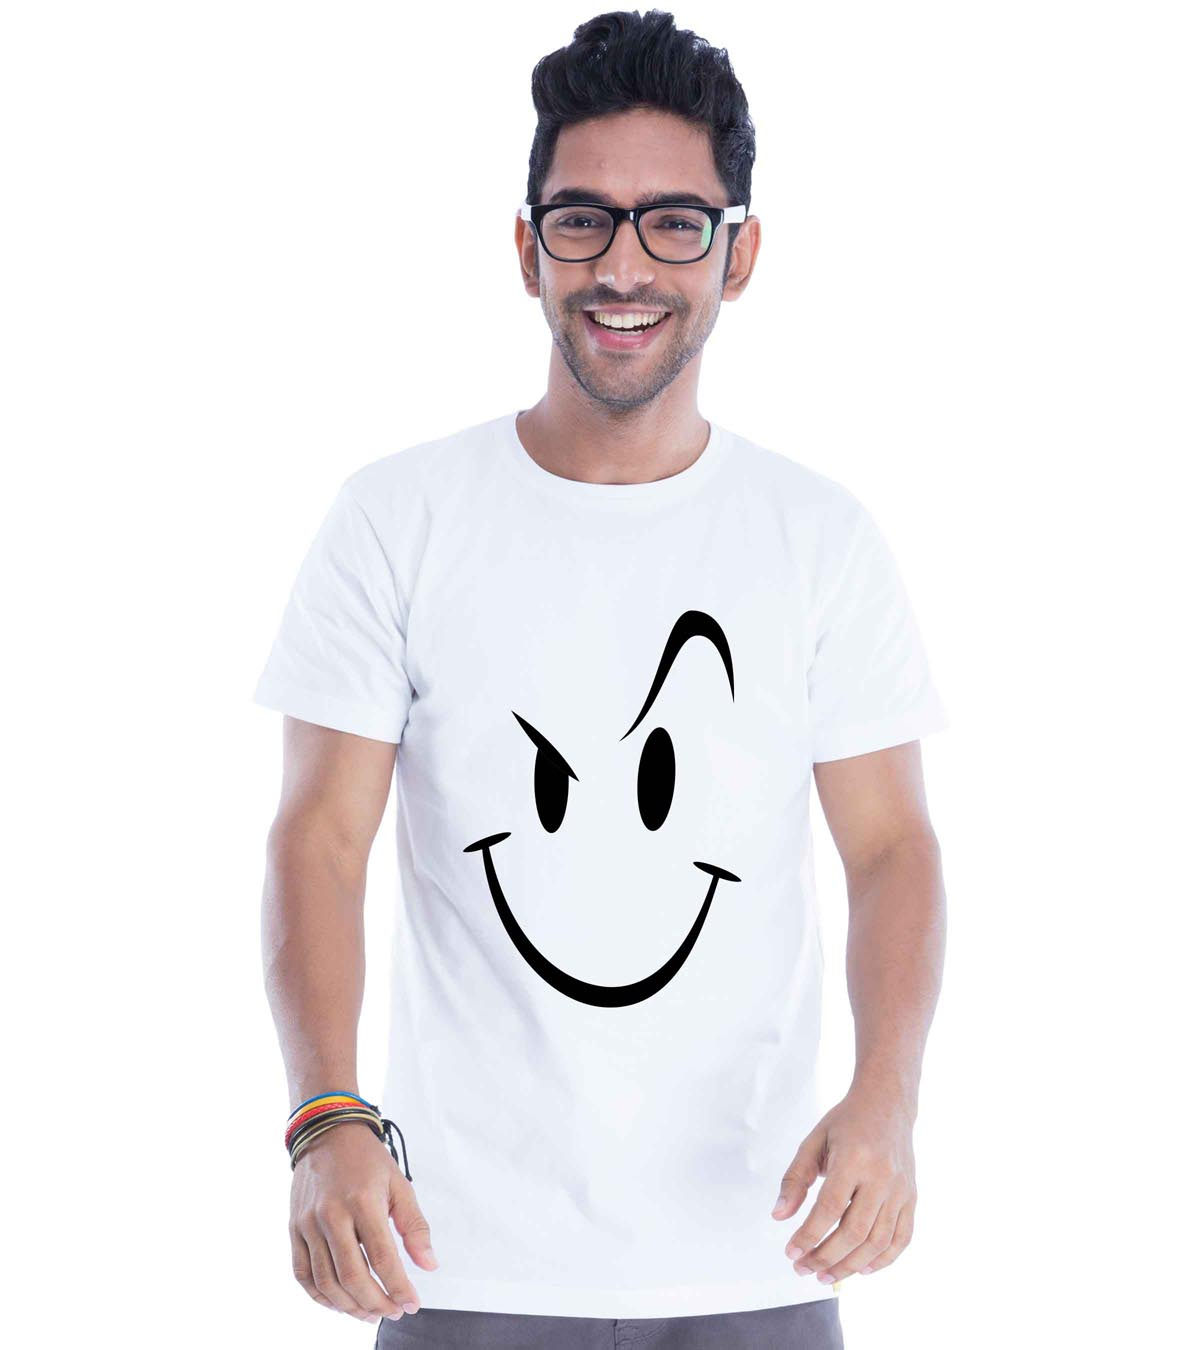 Naughty Smiley (White) Guys Tee